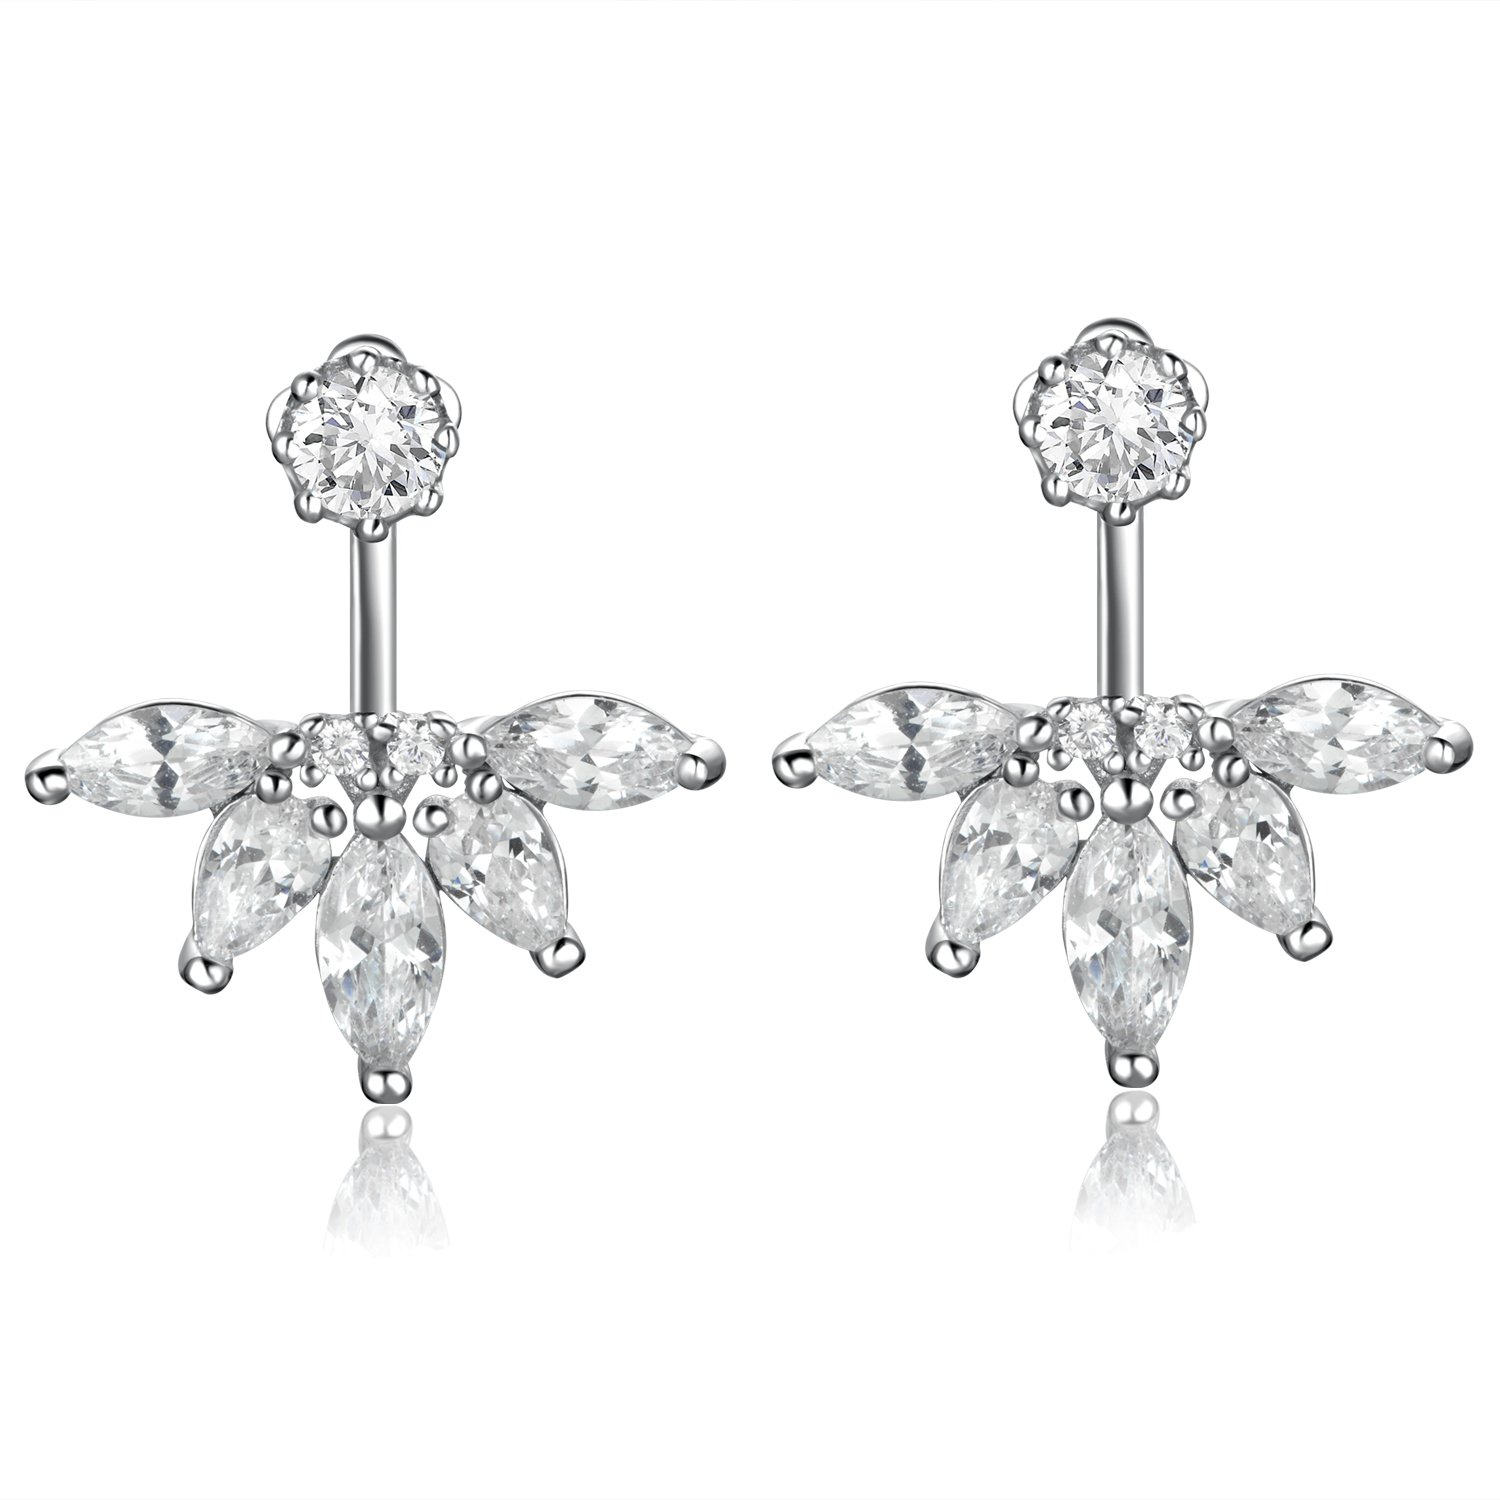 925 Sterling Silver Earrings with Diamonds,DOKINCIK,18K White Gold Plated Clear Crystal Leaf Feather Ear Jacket Earrings Back Cuffs Stud Earring sets for Women Babies and Girls